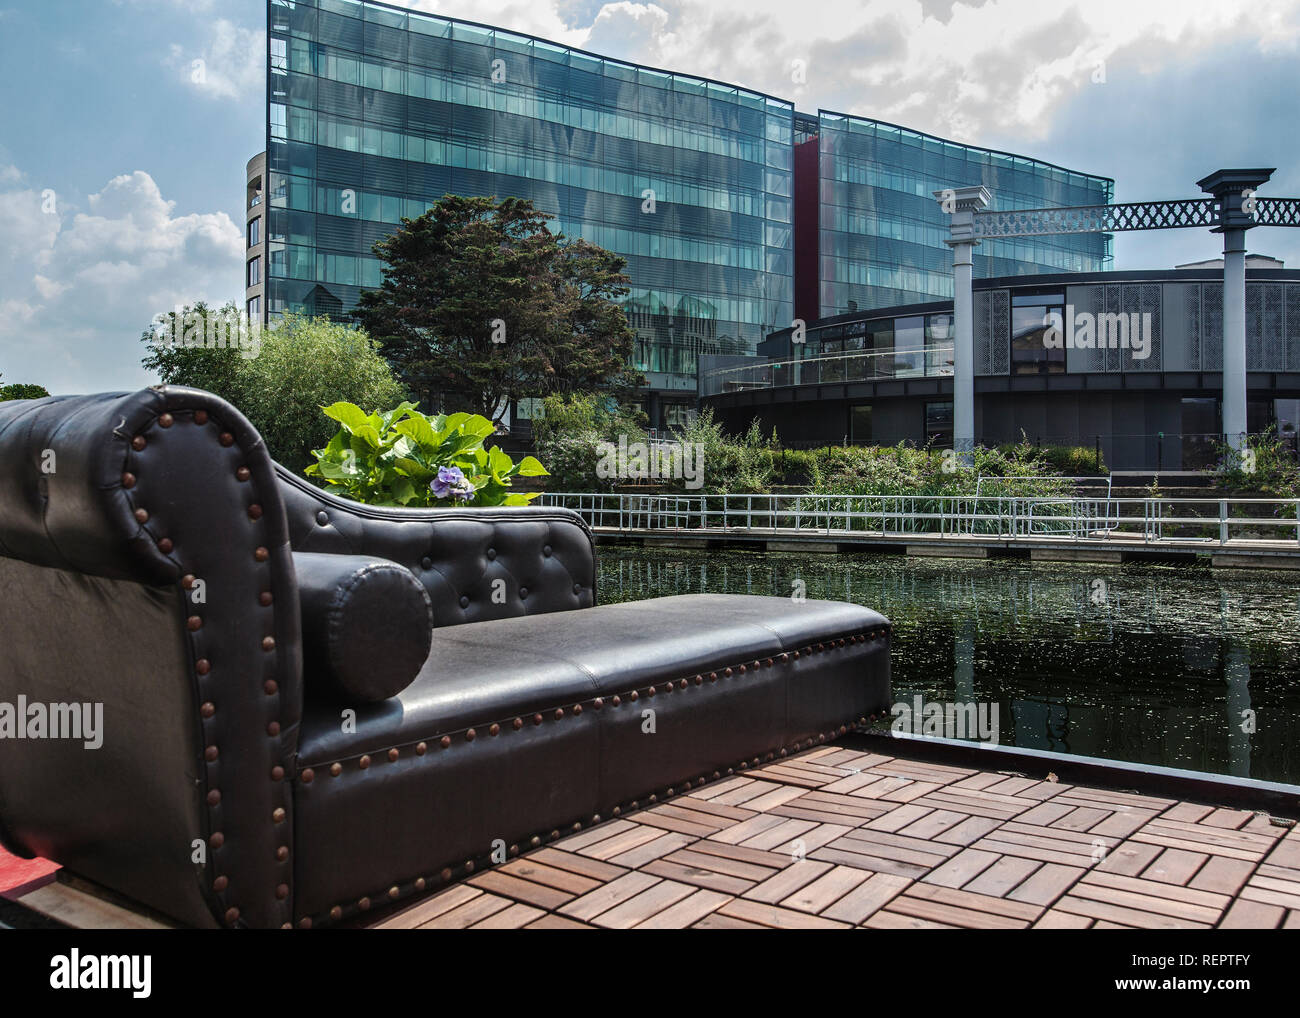 chaise lounge in leather on house boat with the steel and glass kings cross development behind - Stock Image